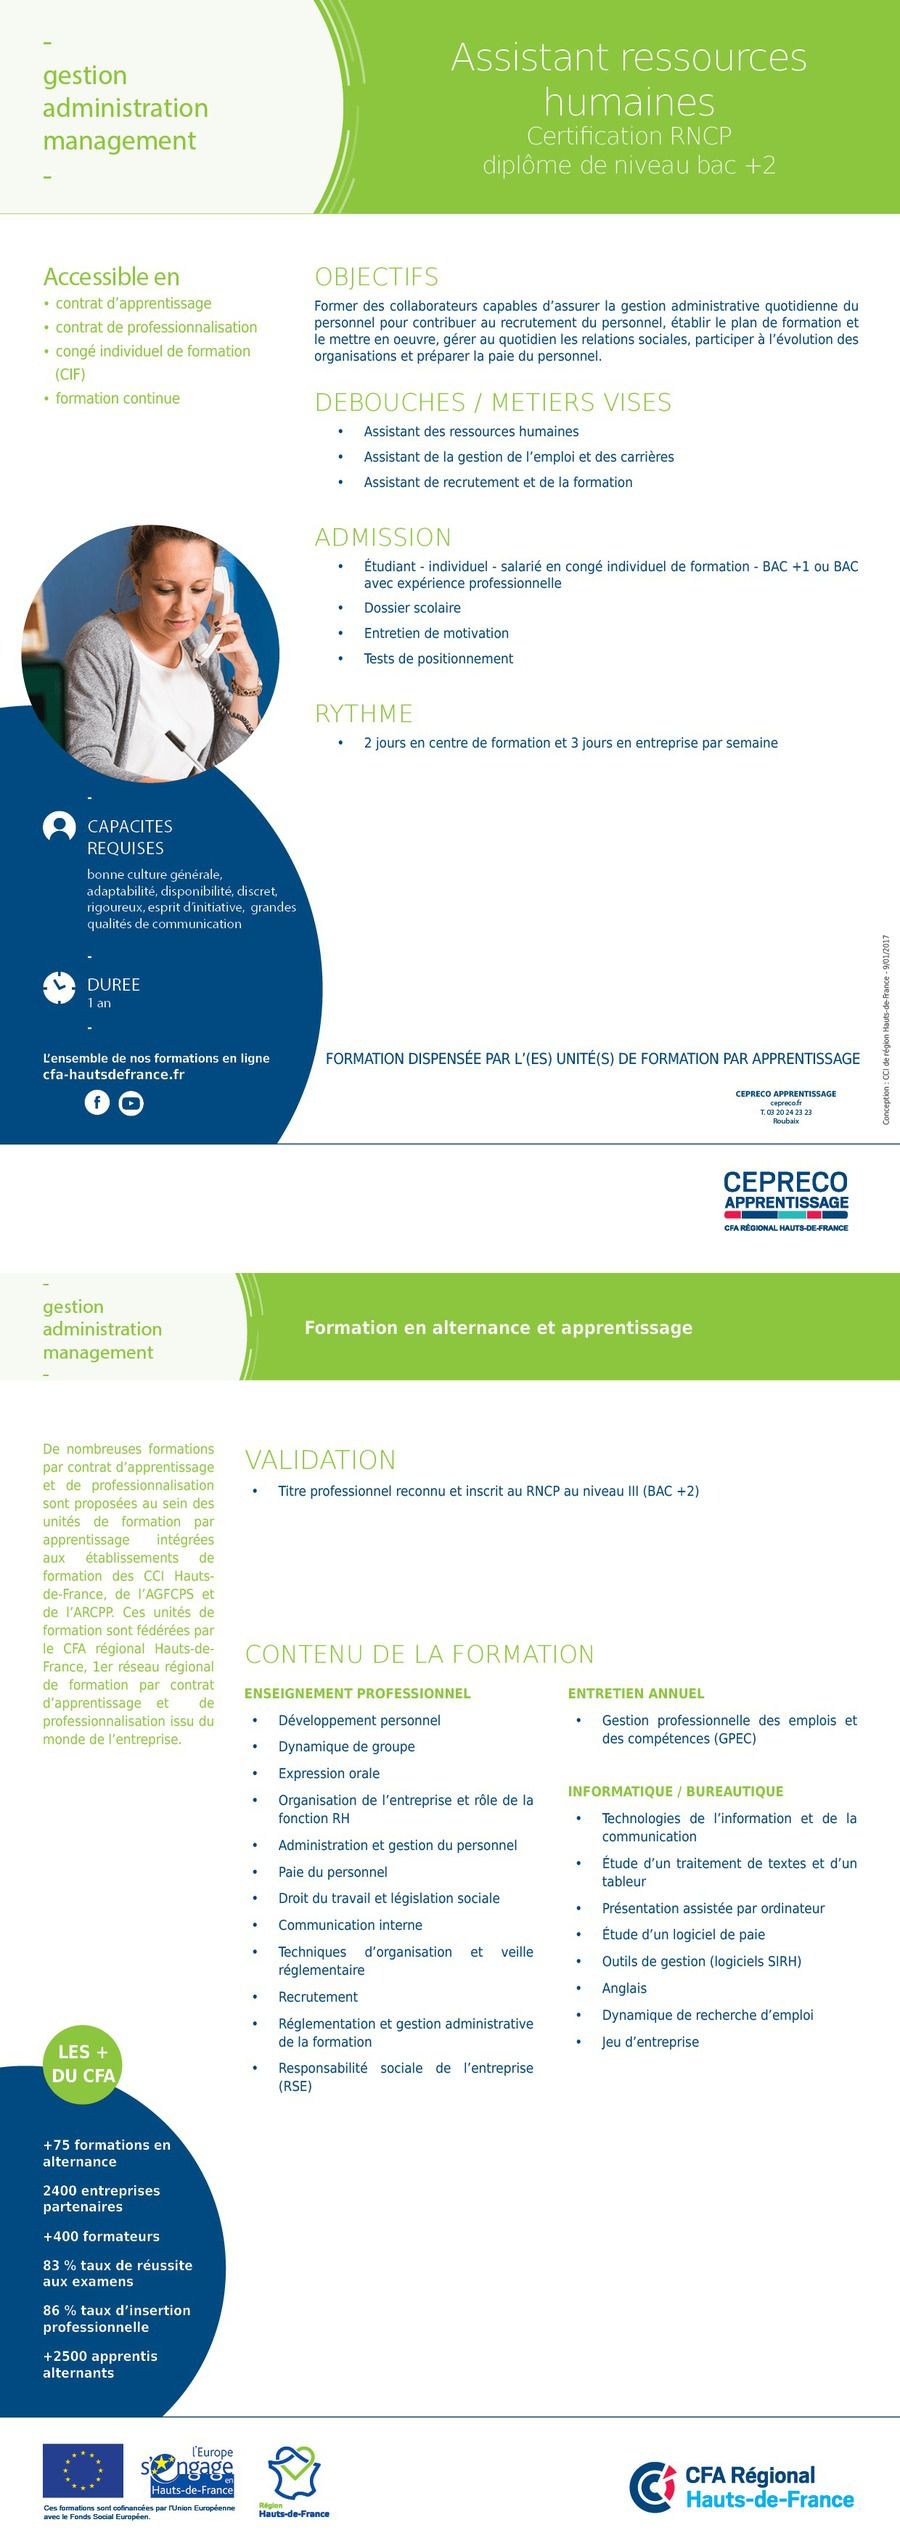 Certification RNCP Niveau BAC +2 Assistant ressources humaines